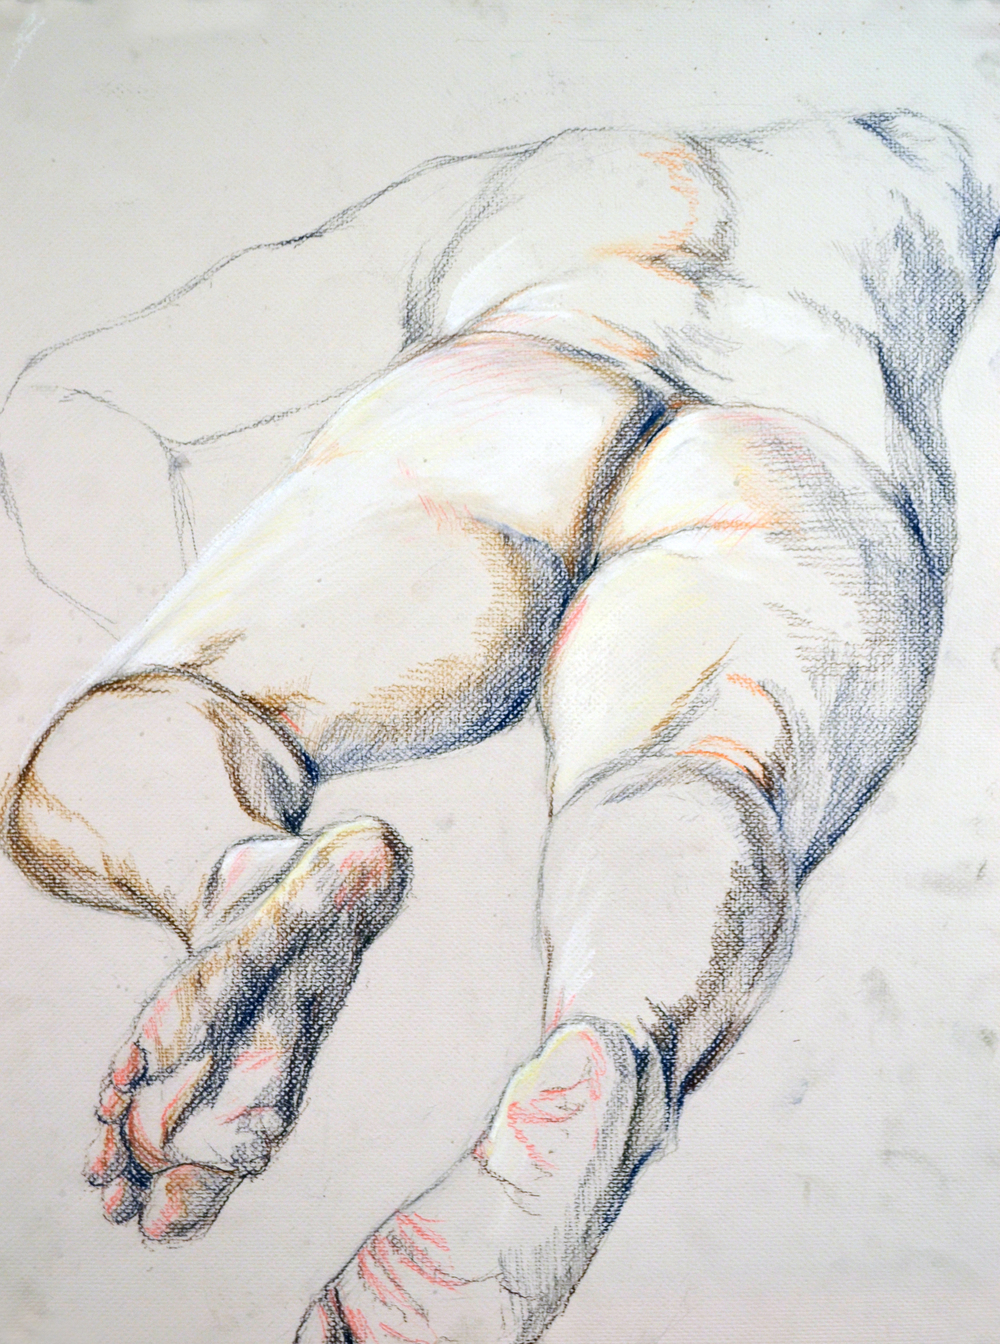 Highschool Figurative Foreshortening Exercise